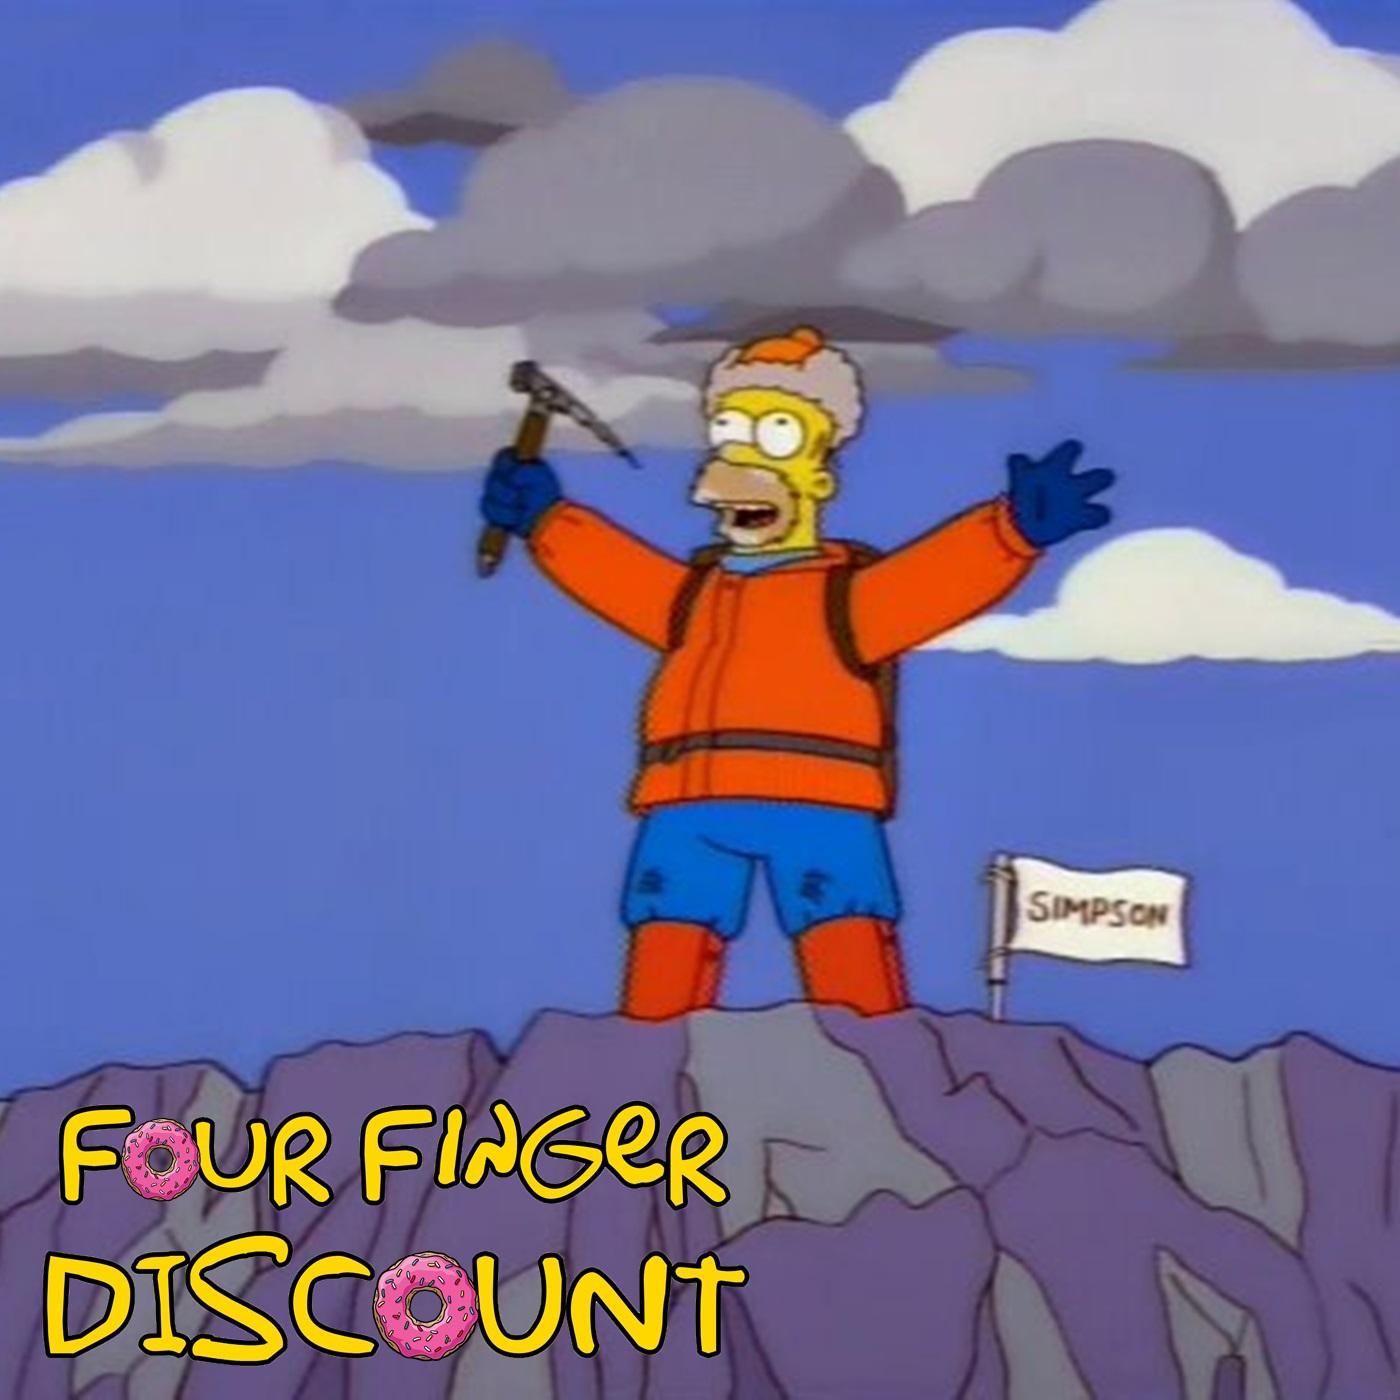 Four Finger Discount (Simpsons Podcast) | Podbay